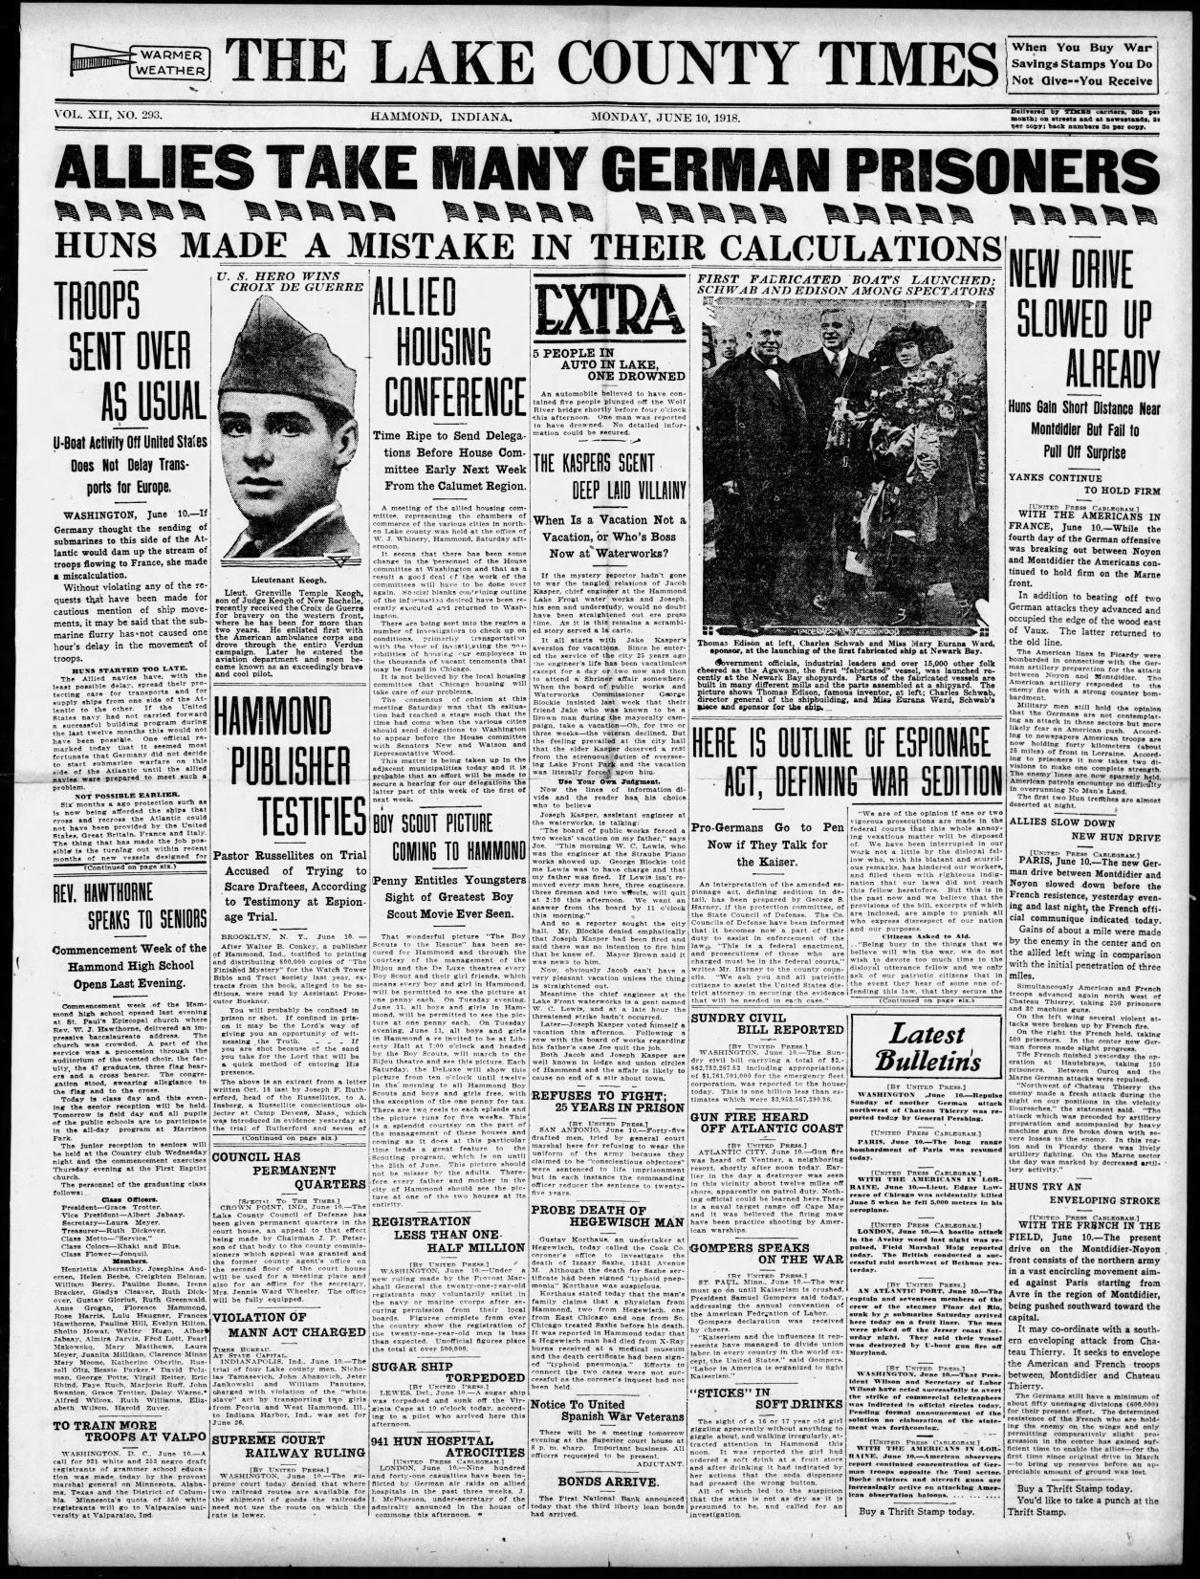 June 10, 1918: Here Is Outline Of Espionage Act, Defining War Sedition